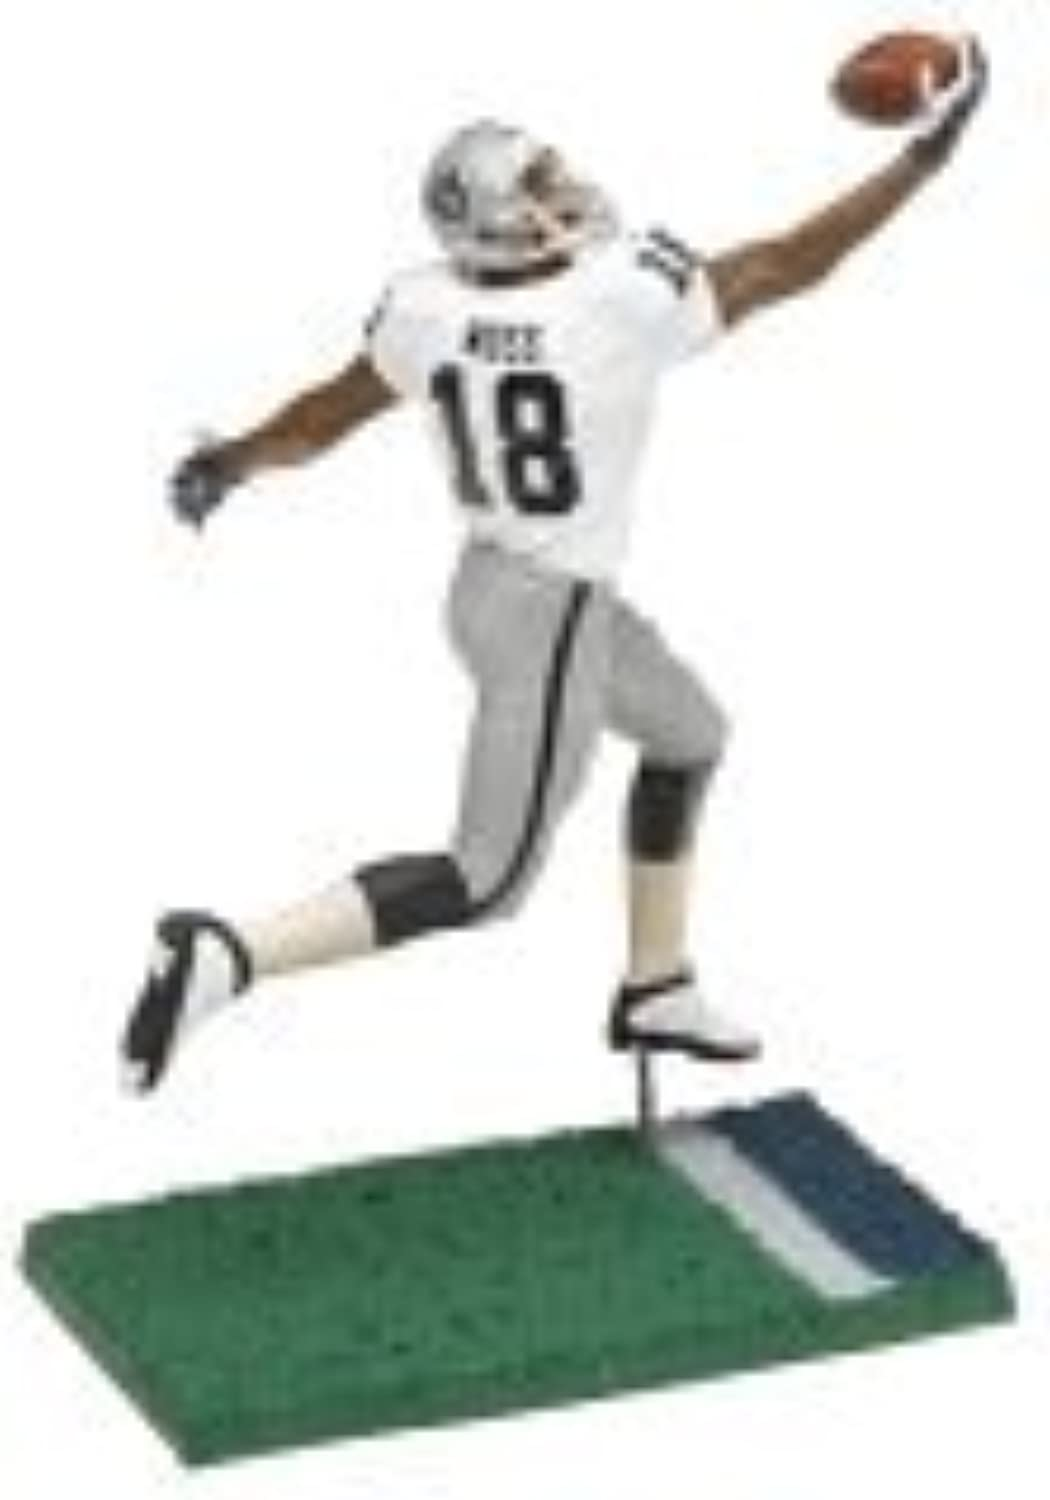 Toys Nfl Series 11 Figure  Draft Pick  Randy Moss, Oakland Raiders White Jersey